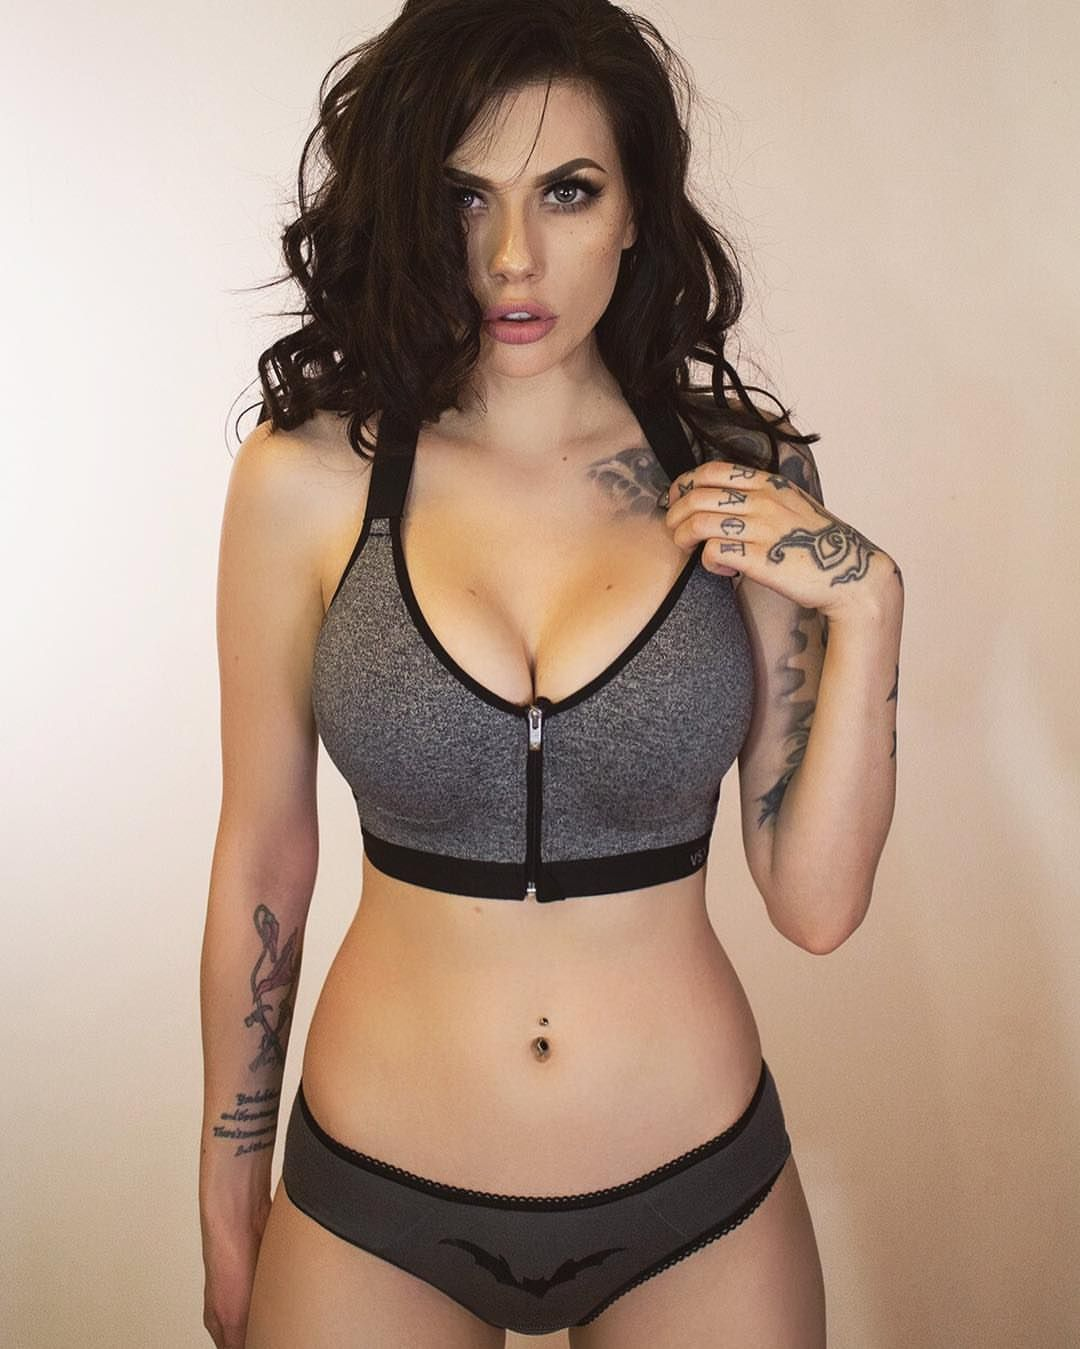 Cleavage Vera Bambi nude (24 photos), Pussy, Leaked, Twitter, bra 2020